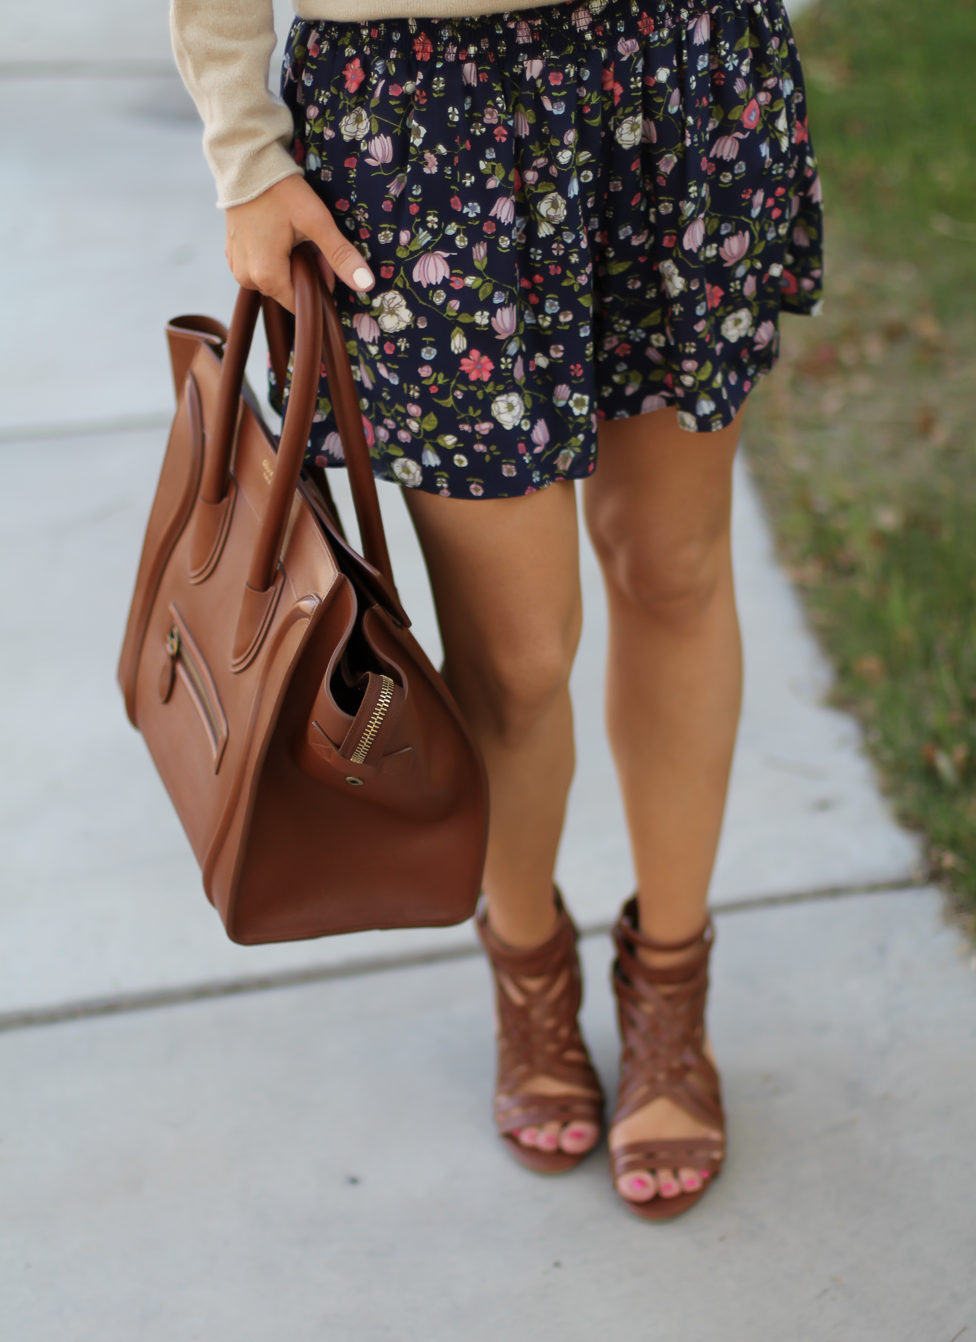 Navy Floral Shorts, Tan Cashmere Sweater, Brown Gladiator Sandals, Brown Leather Tote, Rebecca Taylor, J.Crew, Candies, Celine 9